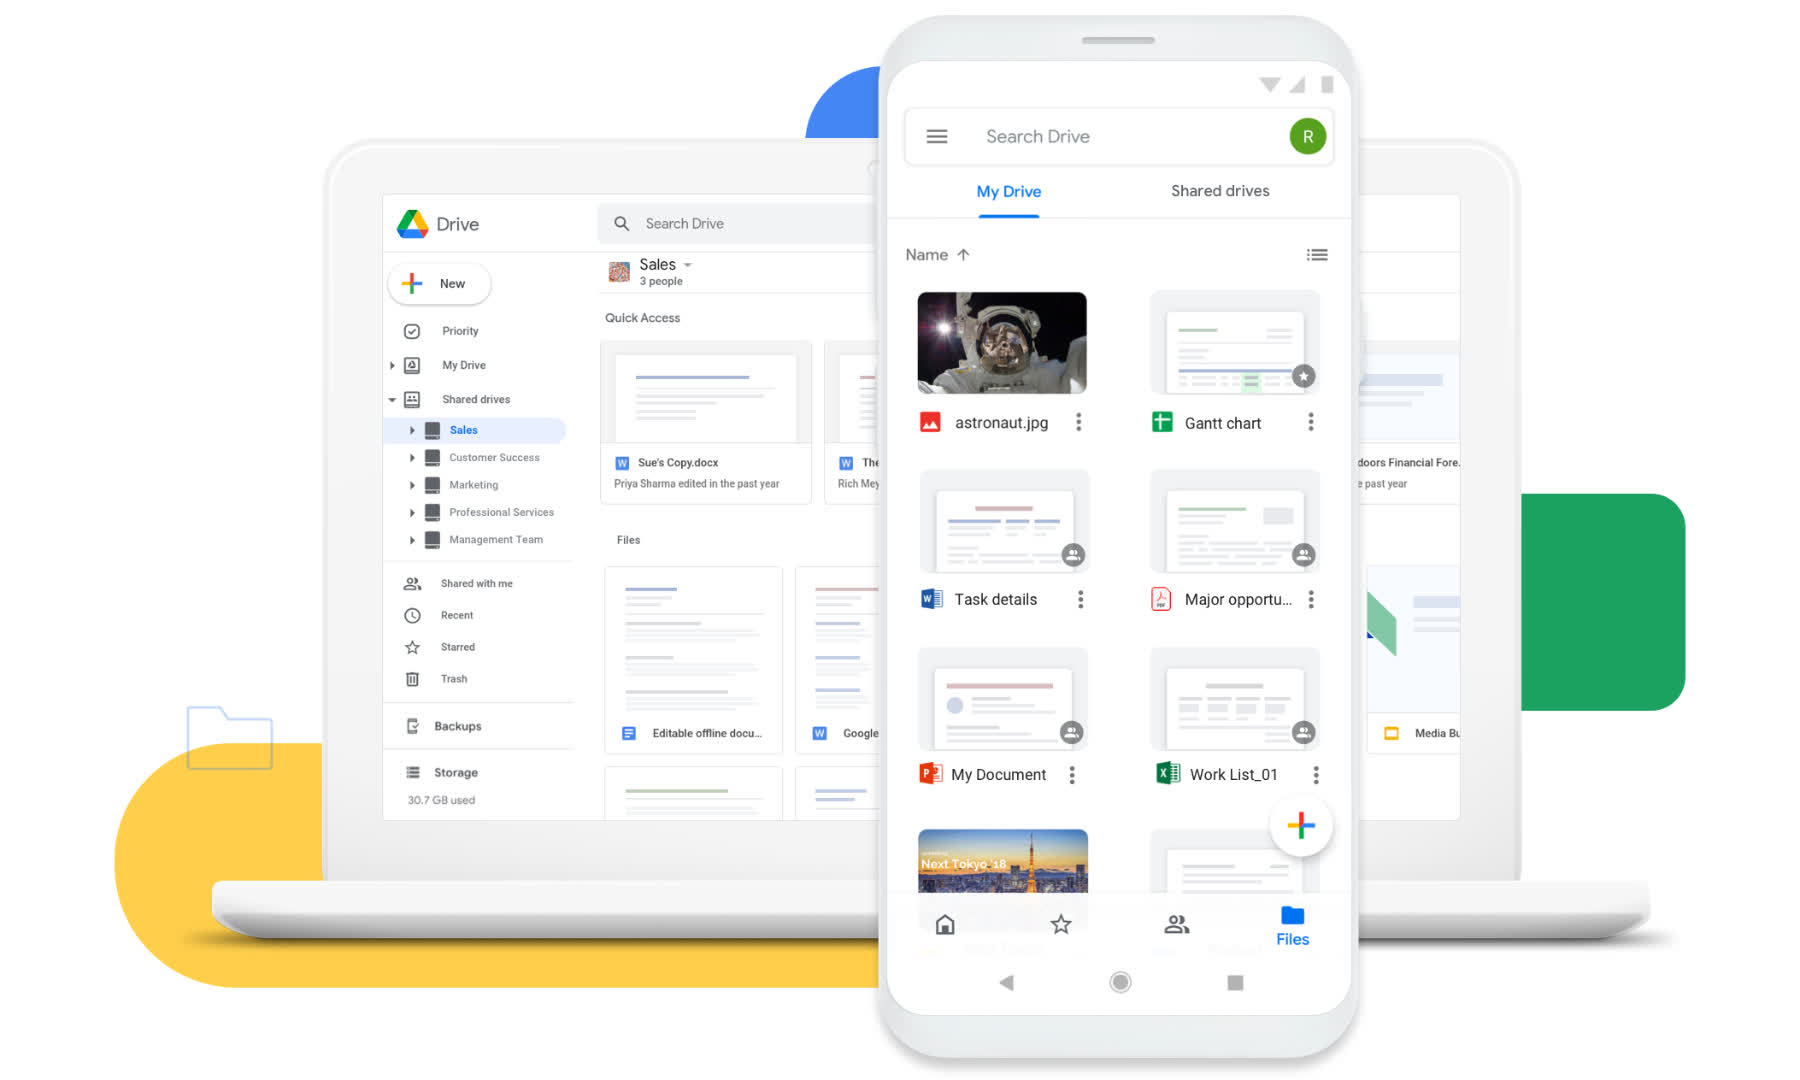 Google Drive for desktop aims to simplify file sync for business and individual users